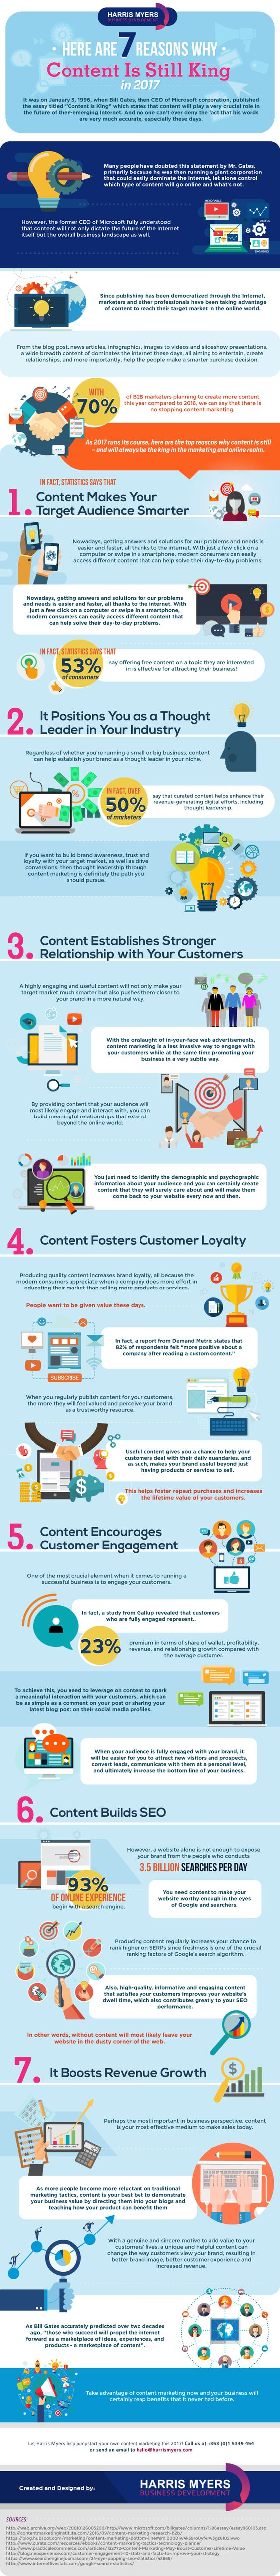 Infographic Of The Week:  7 Reasons Why Content Is Still King